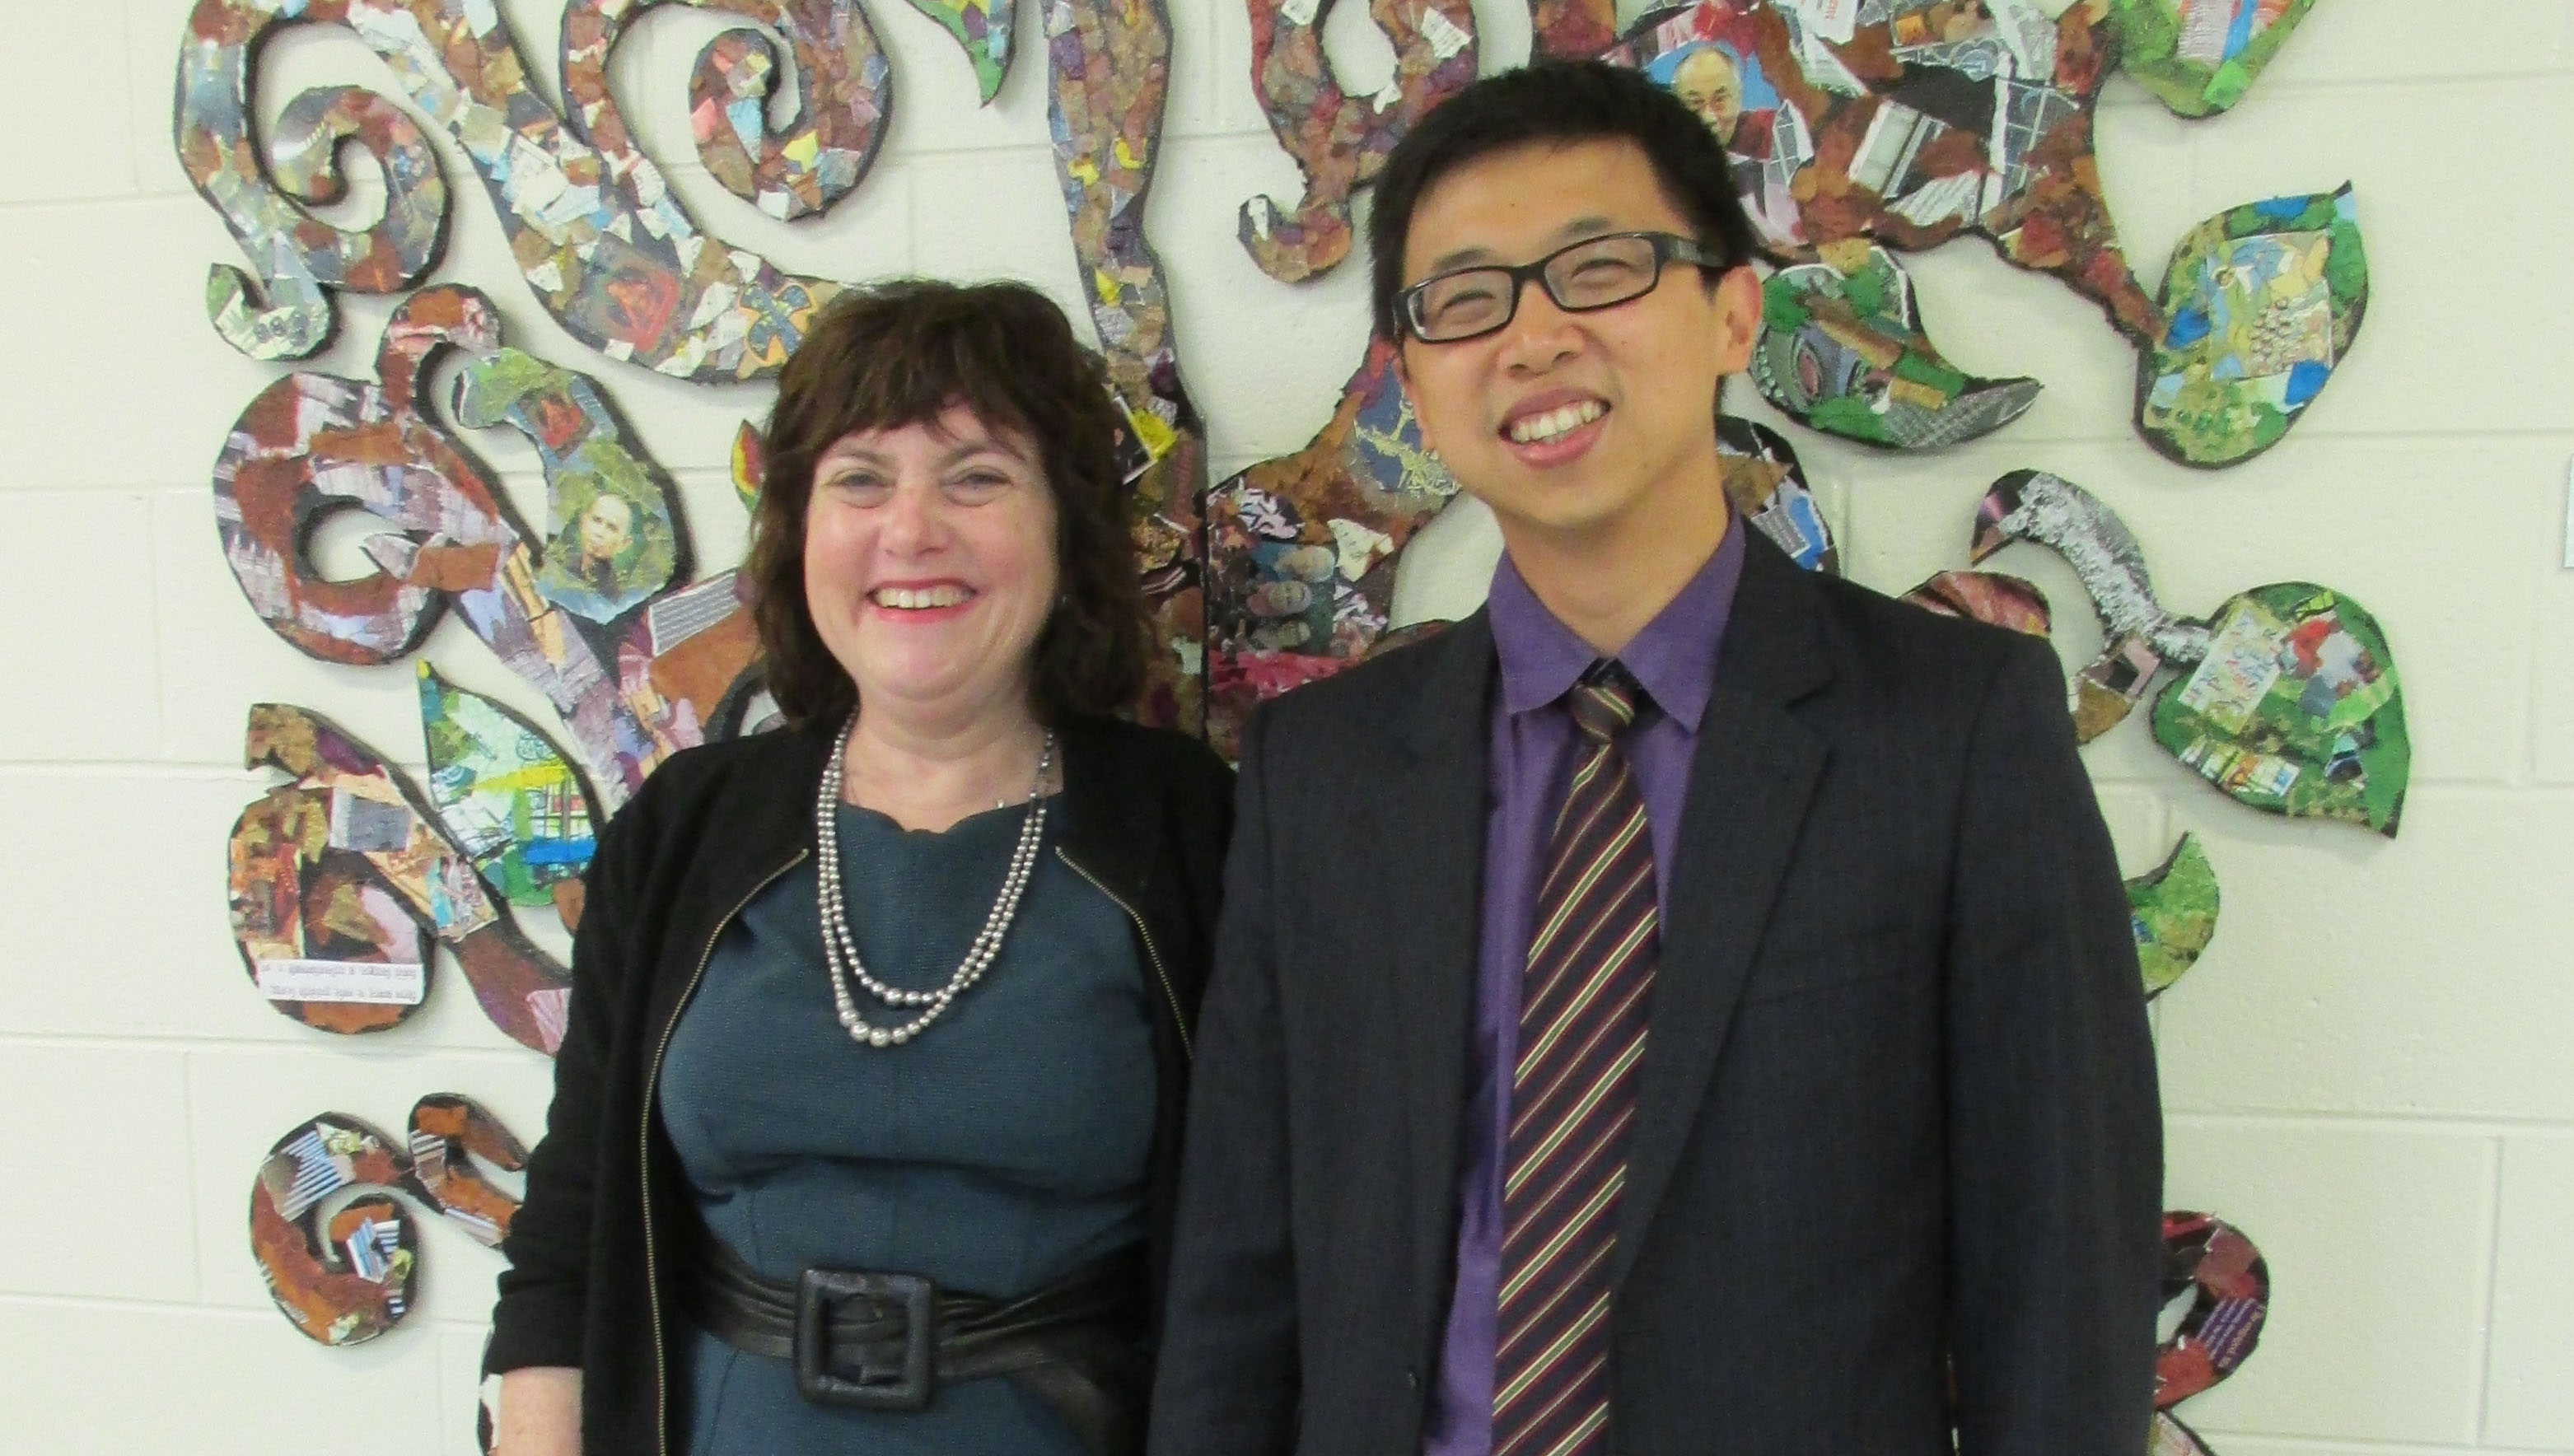 Clare Cavanagh welcomes Tony Lin before his presentation on October 2, 2015